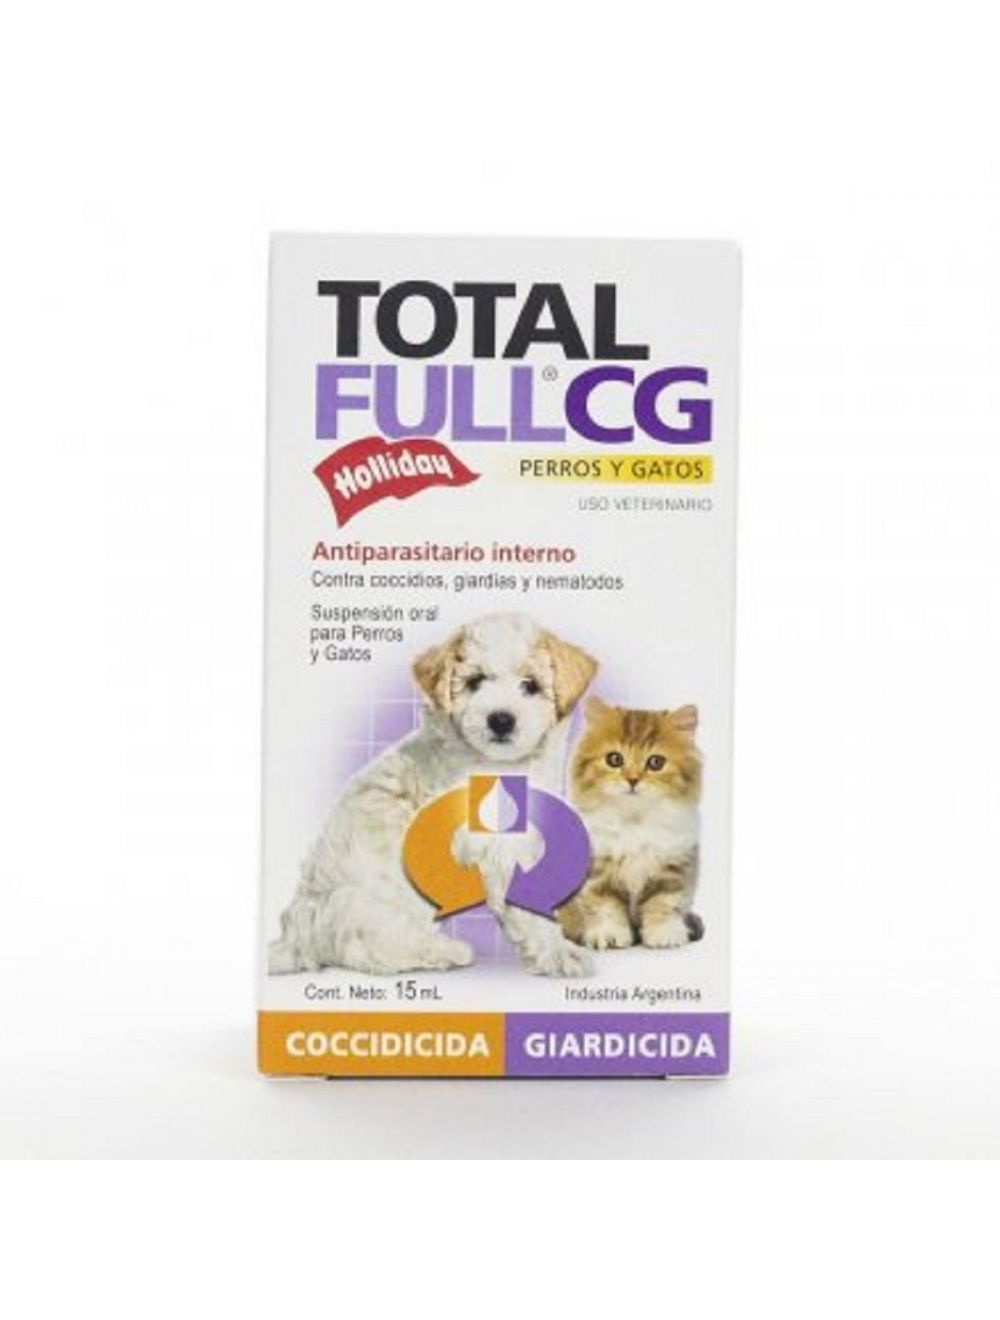 Total Full CG Suspensión para Mascotas x 15 ml